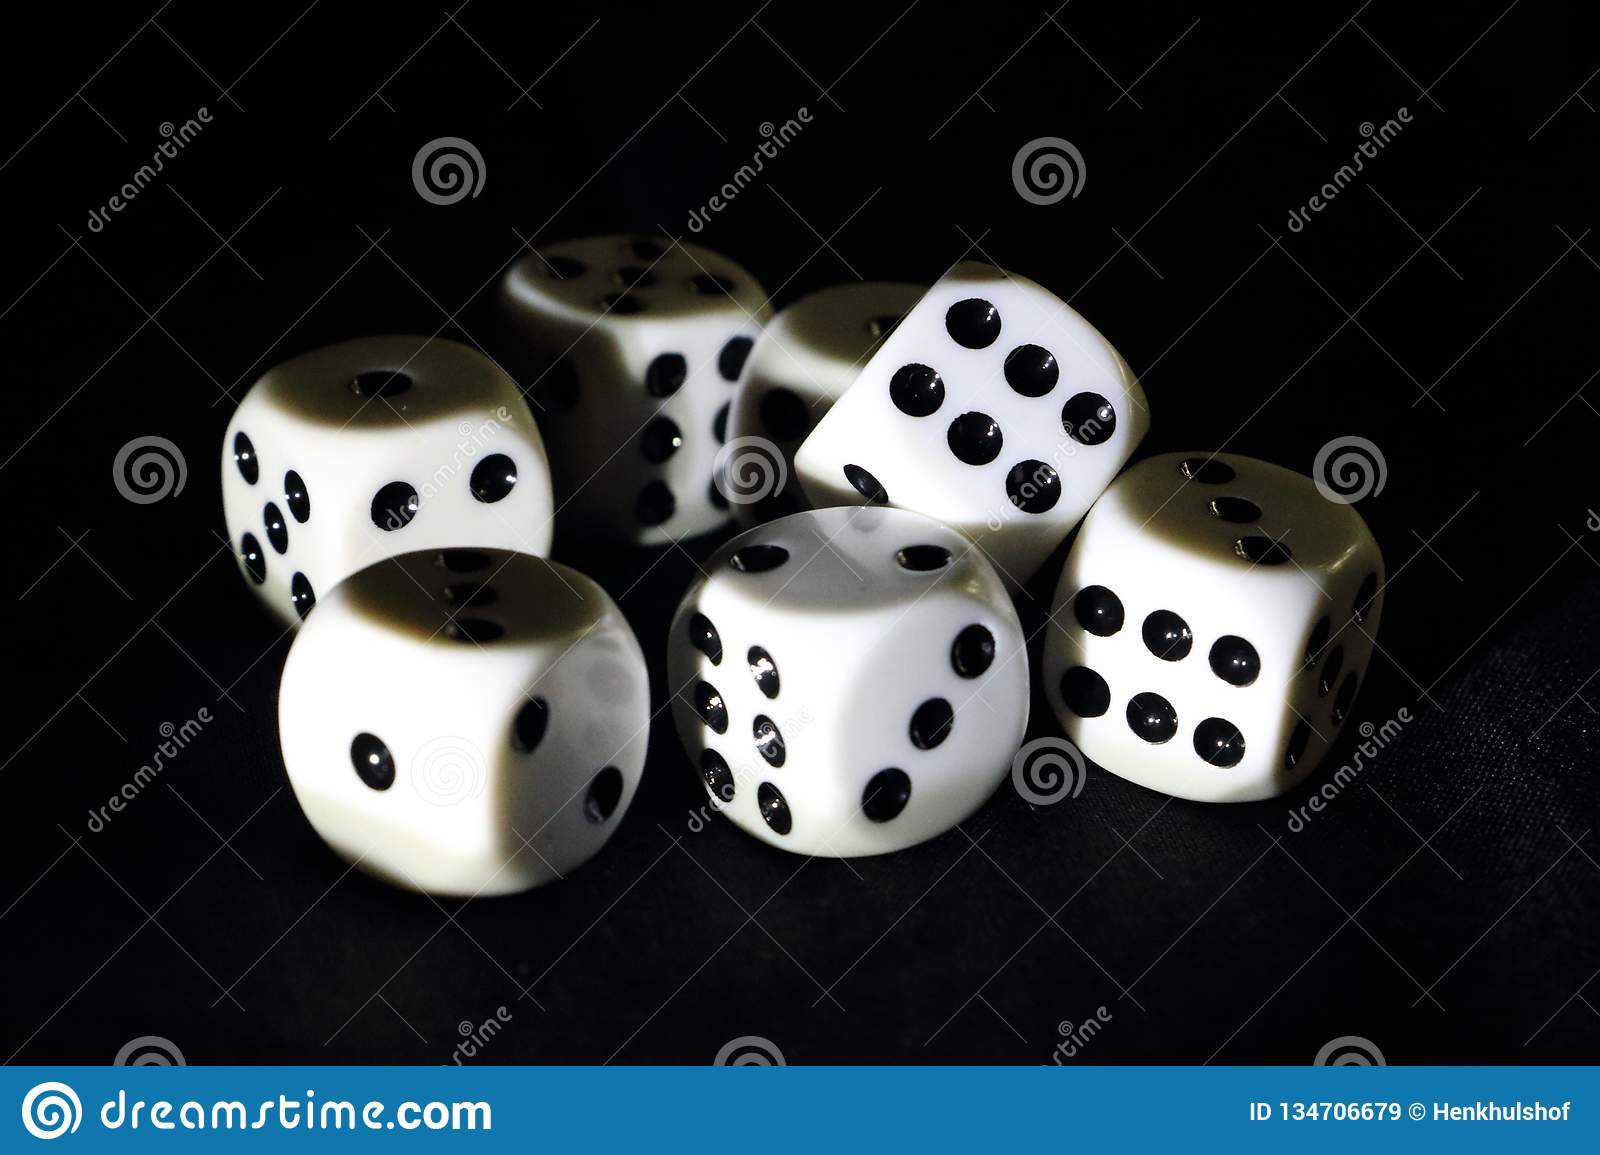 Dice for playing a game